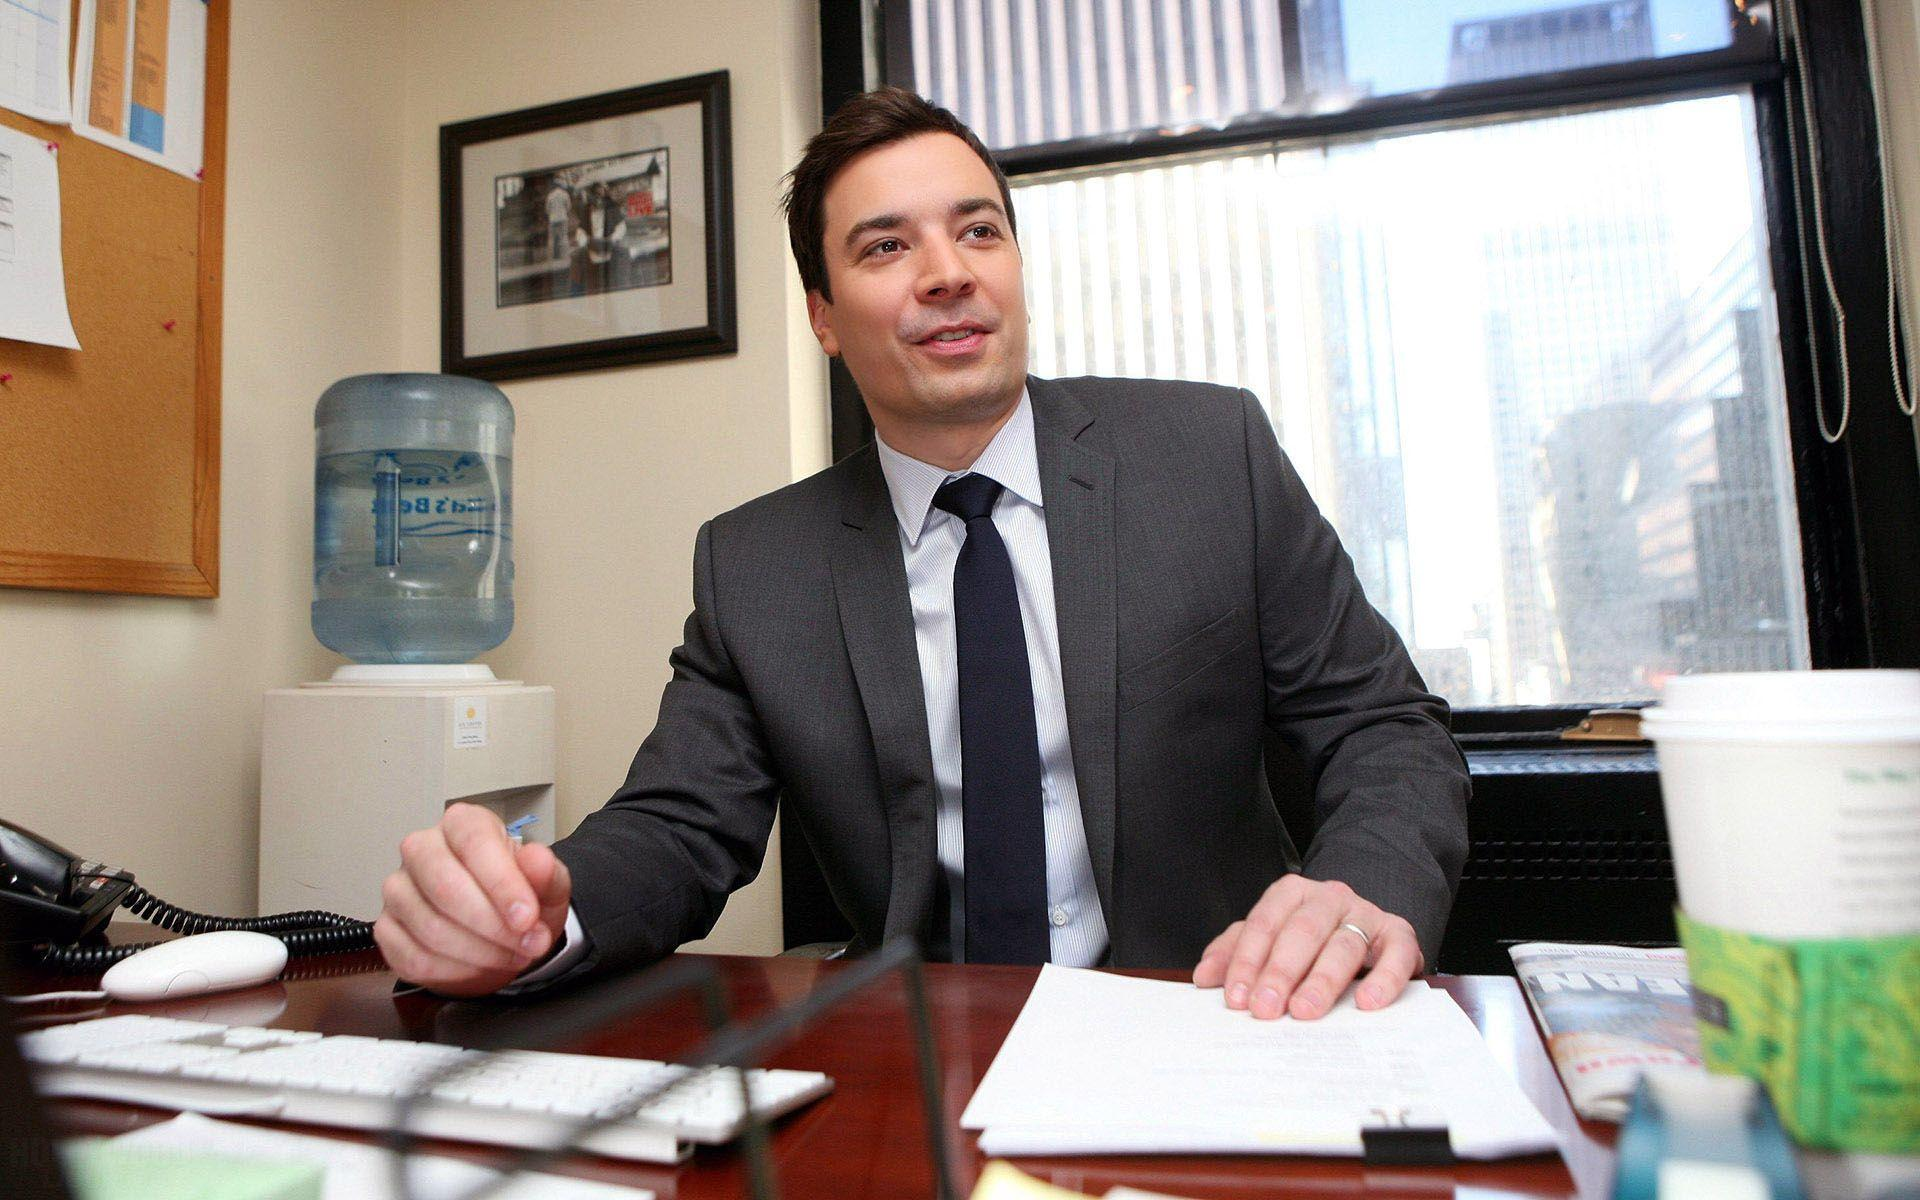 Jimmy Fallon Working at his Office